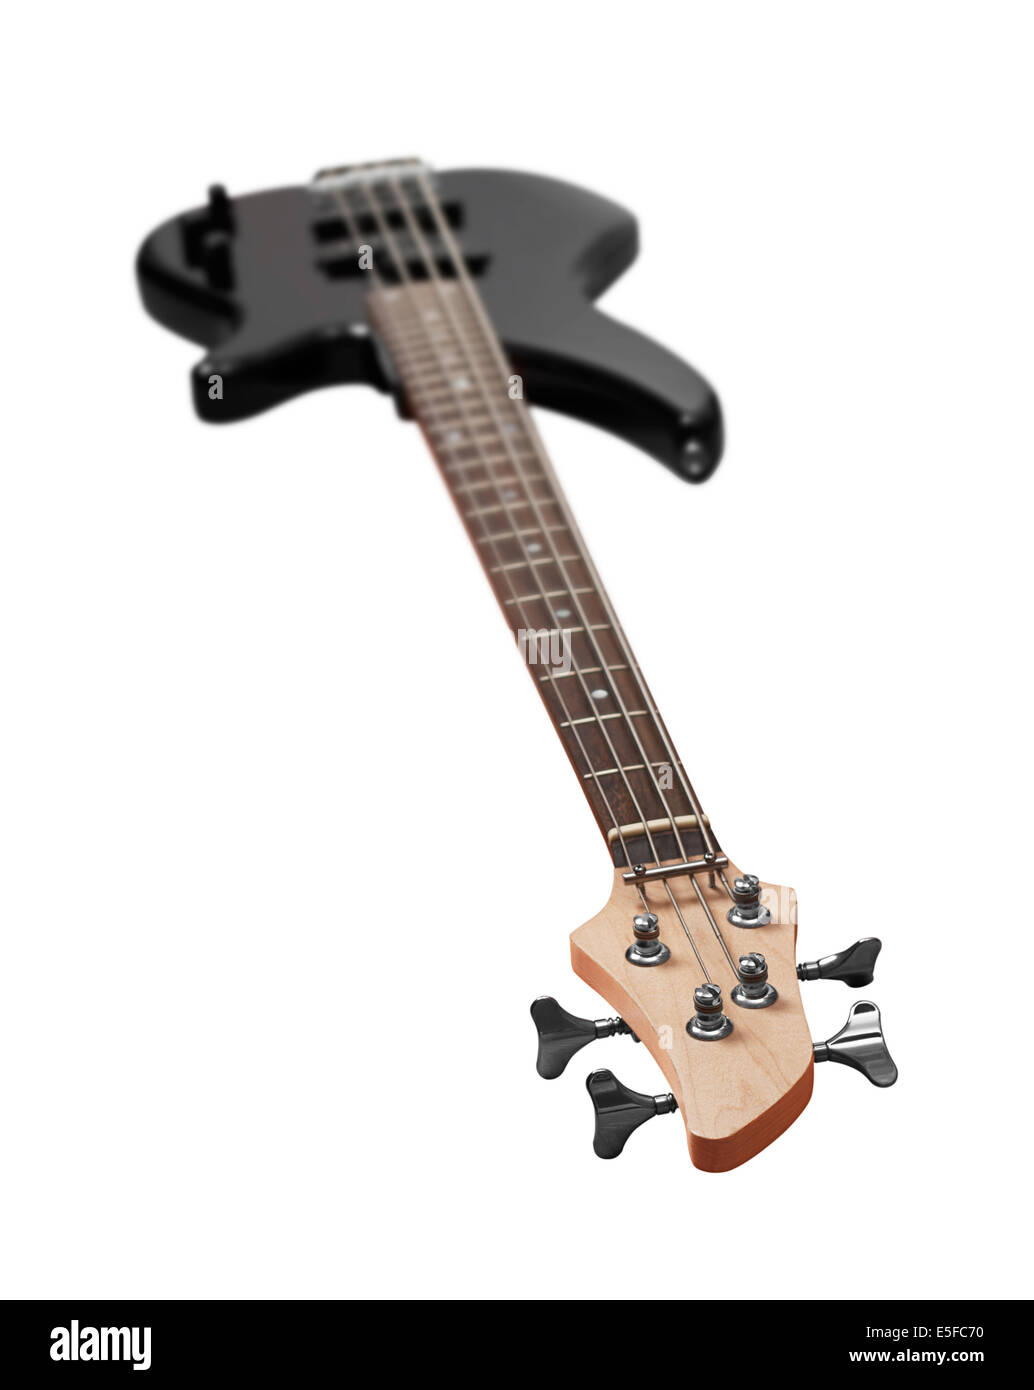 Black bass guitar on awhite background - Stock Image